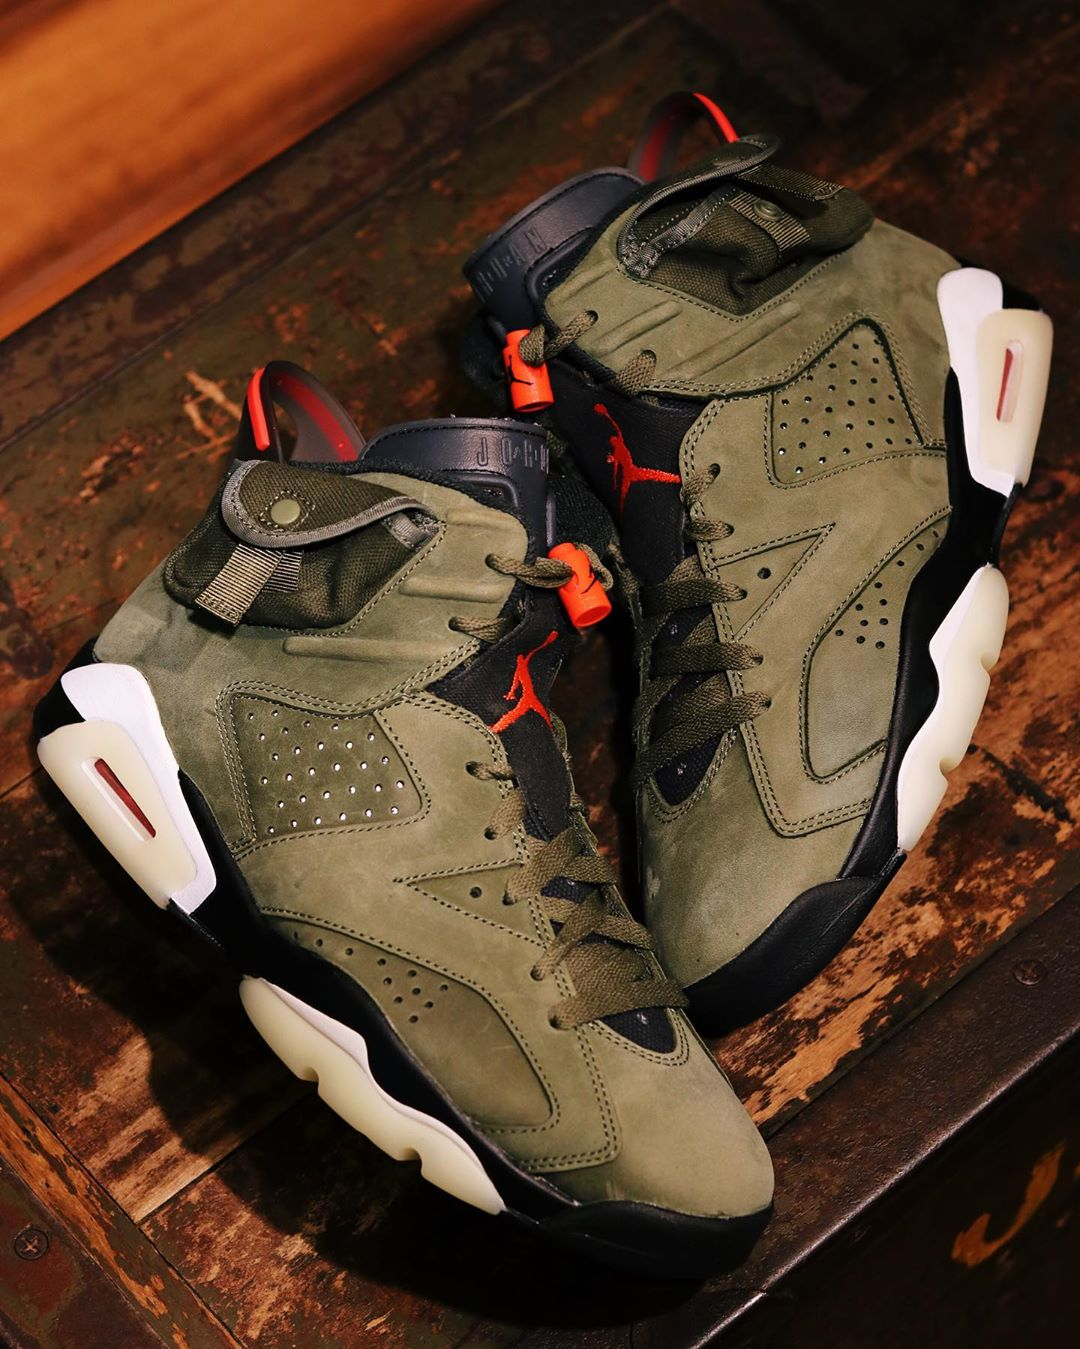 finest selection 07d80 b4921 Travis Scott Air Jordan 6 to Release on October 12th - HOUSE ...